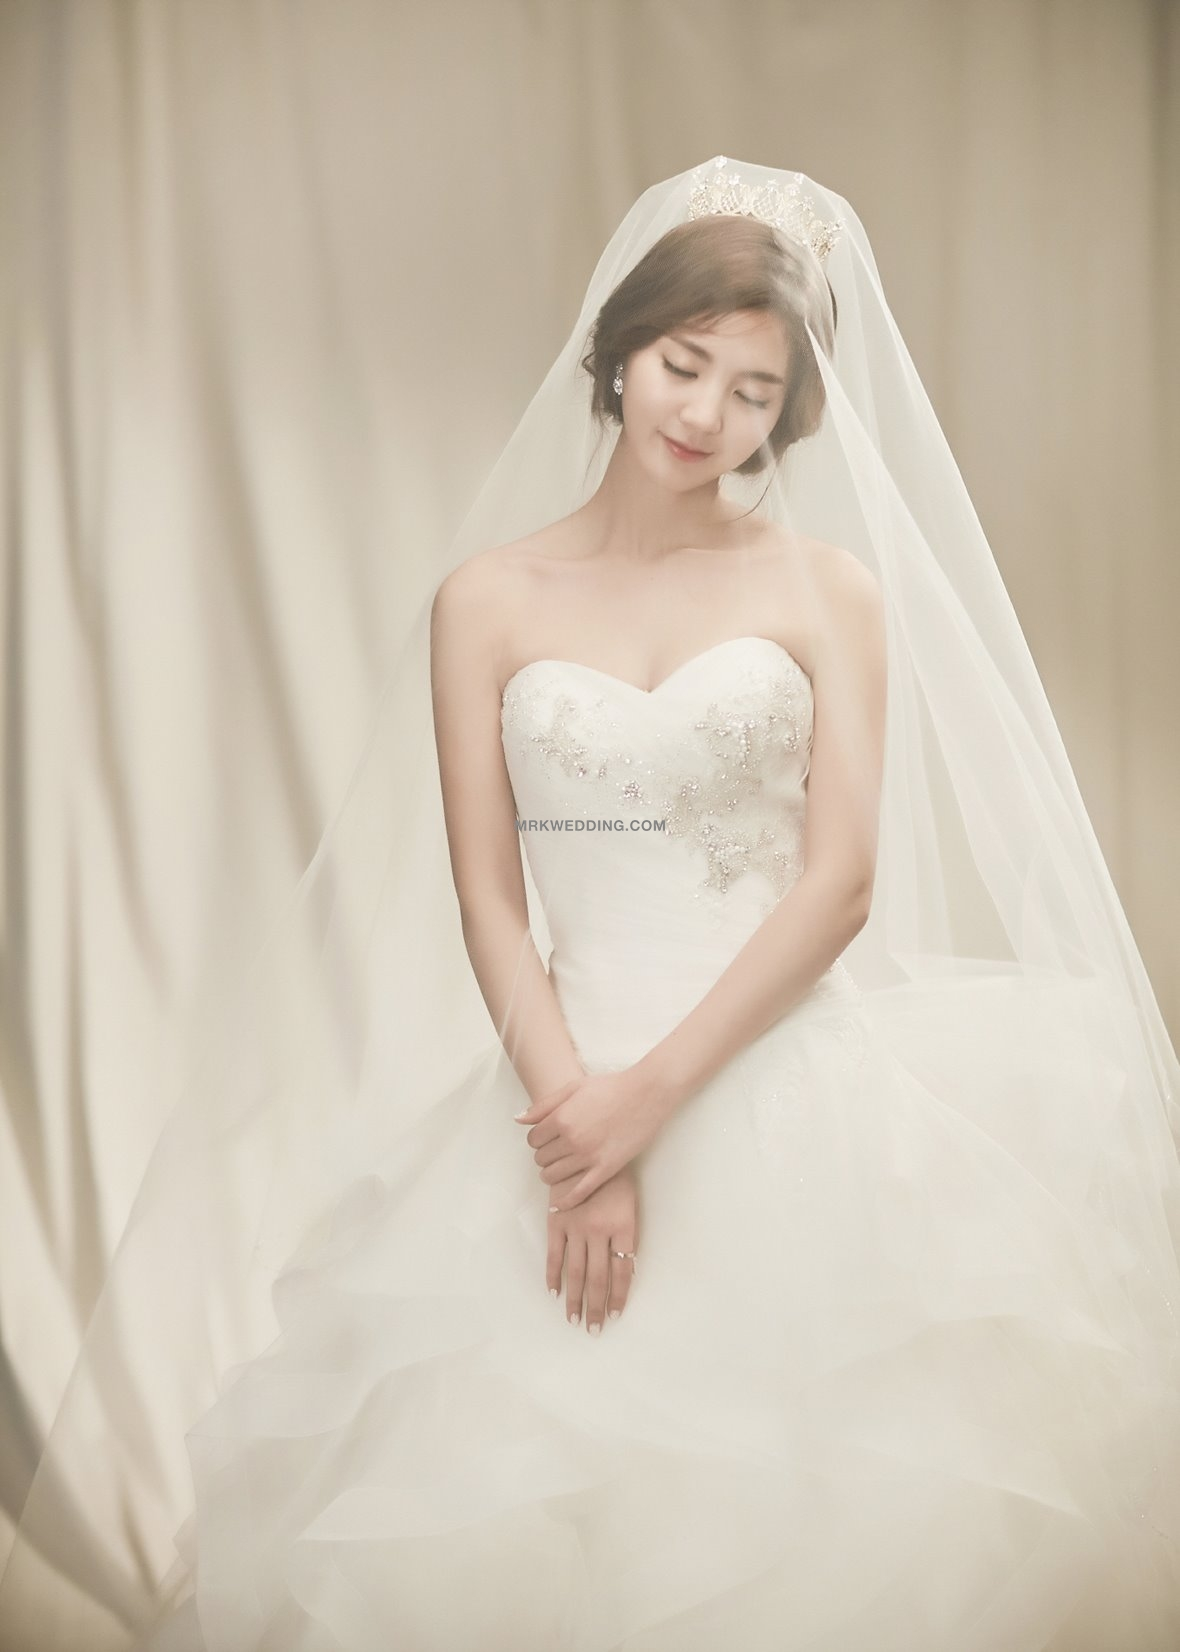 Mrk Korea Wedding (10).jpg